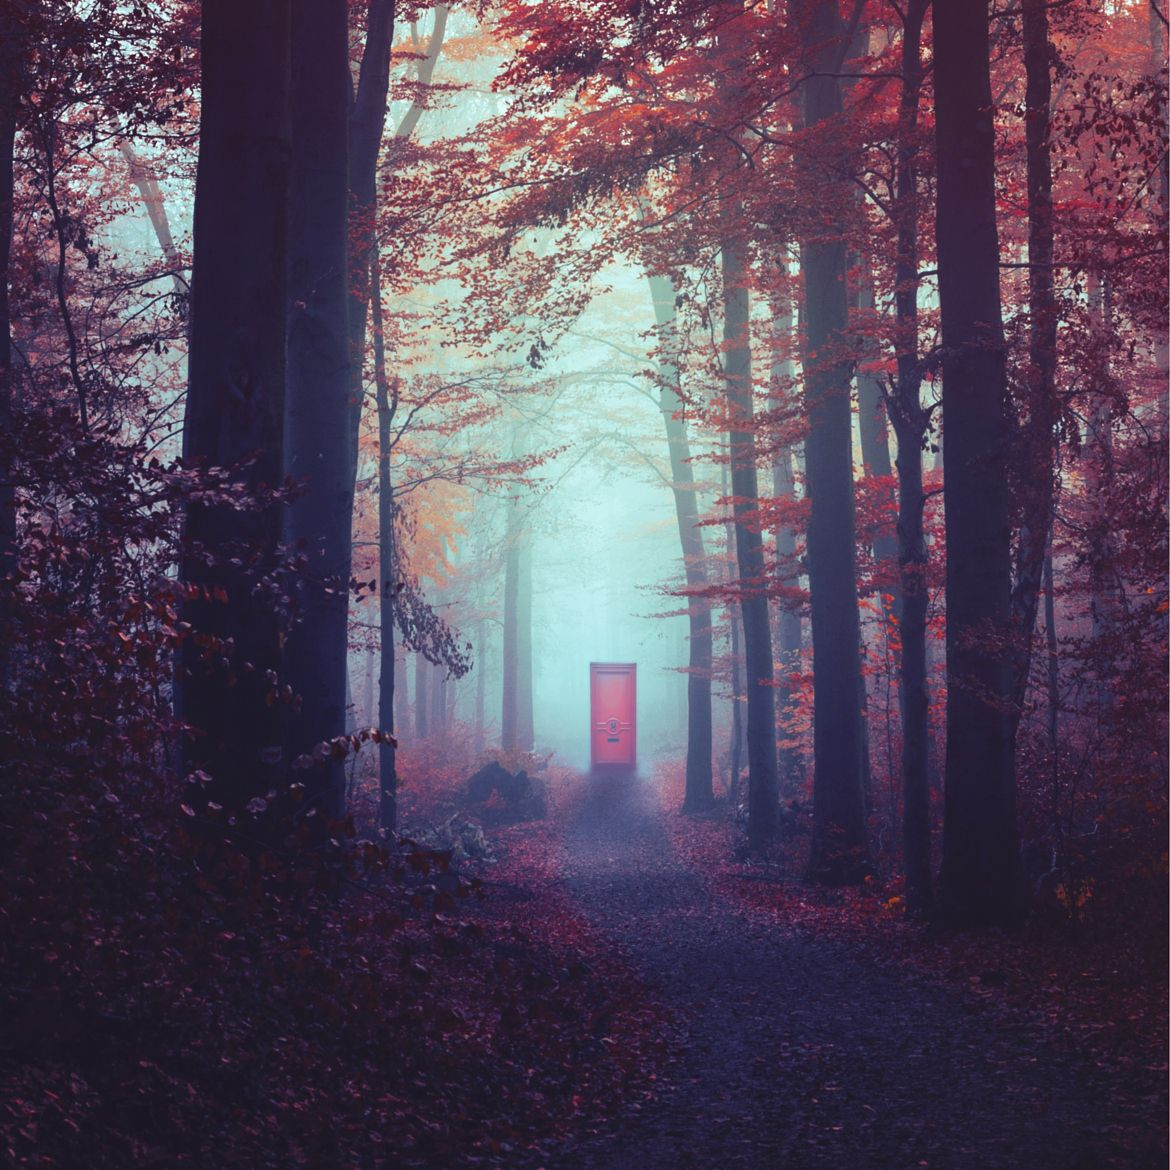 Photograph The Secret Doorway by Nikita Gill on 500px